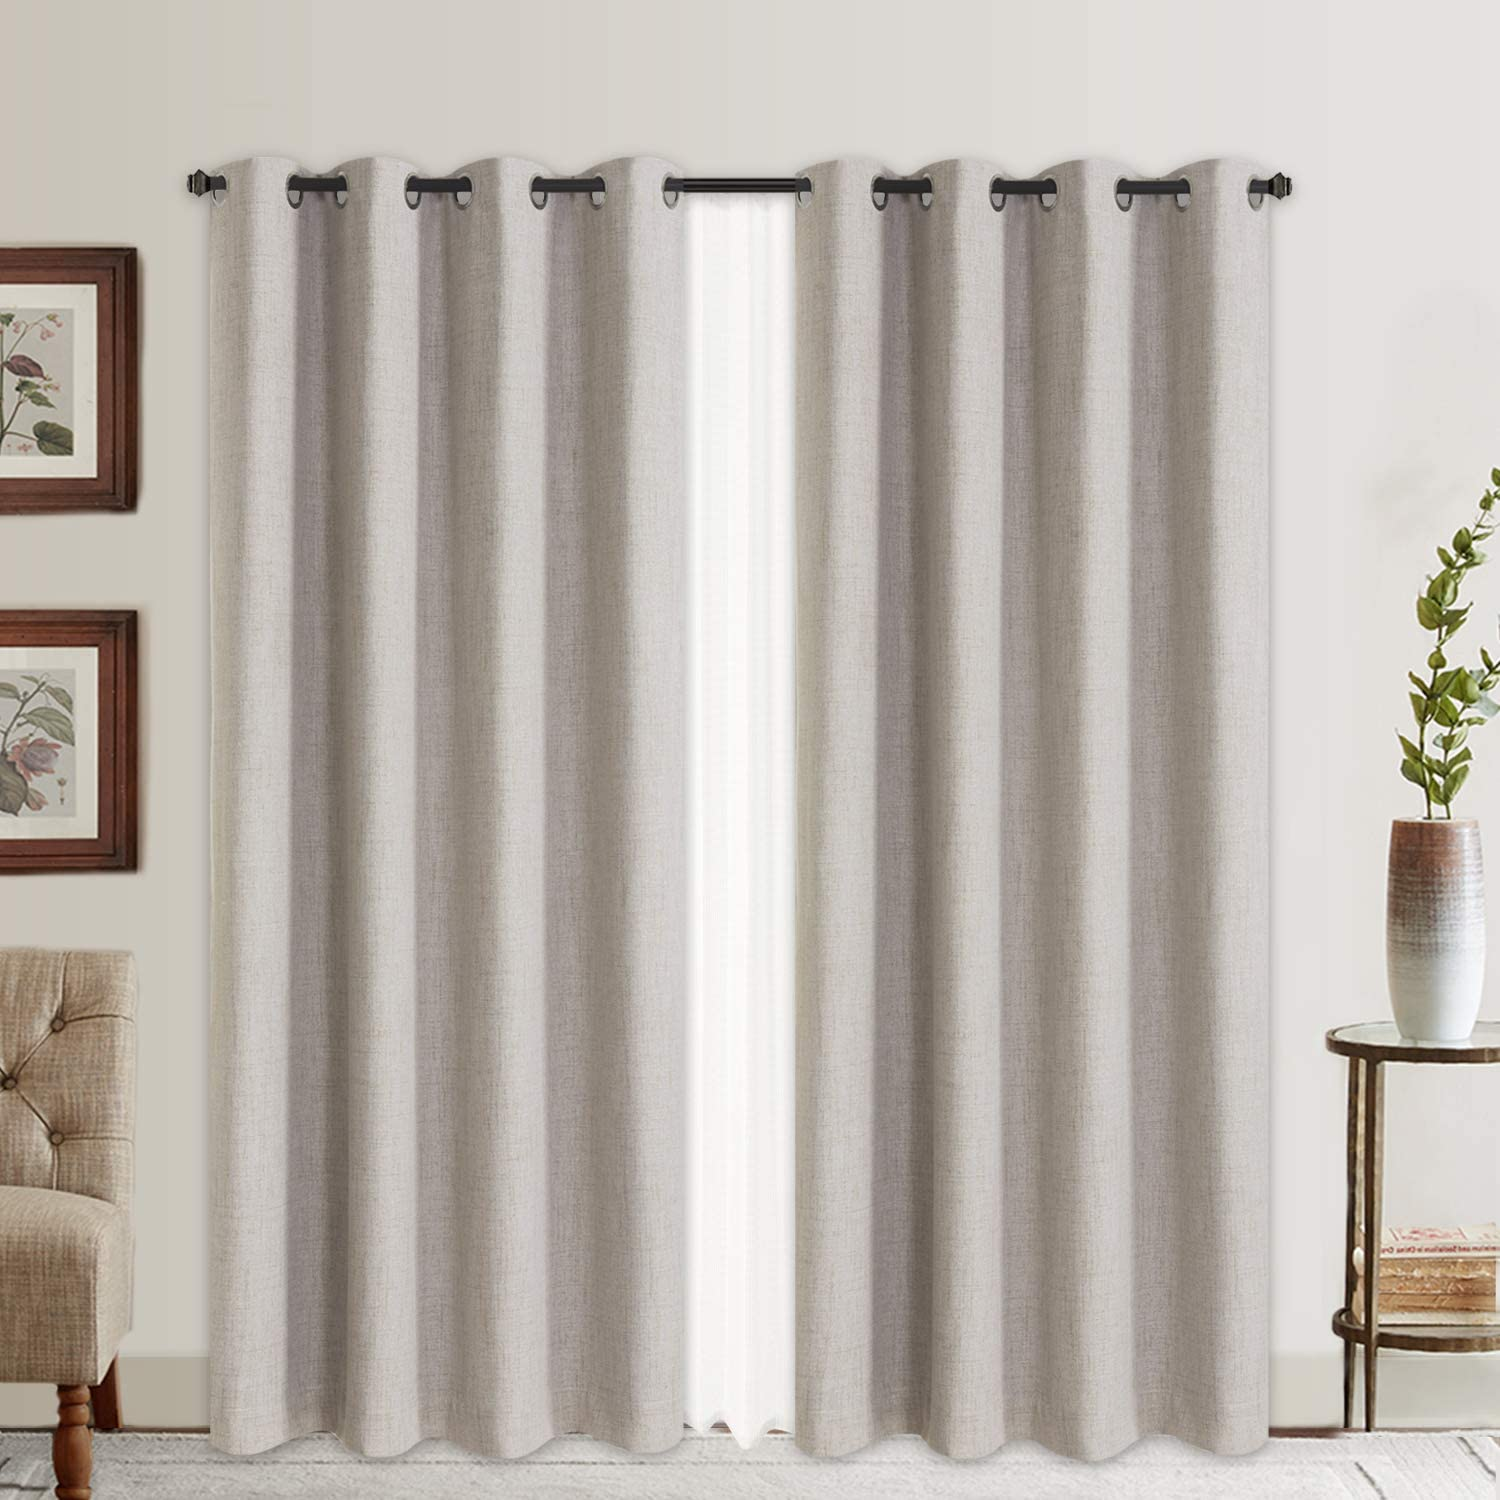 The Rose Home Fashion 100% Blackout Curtains are the most stylish